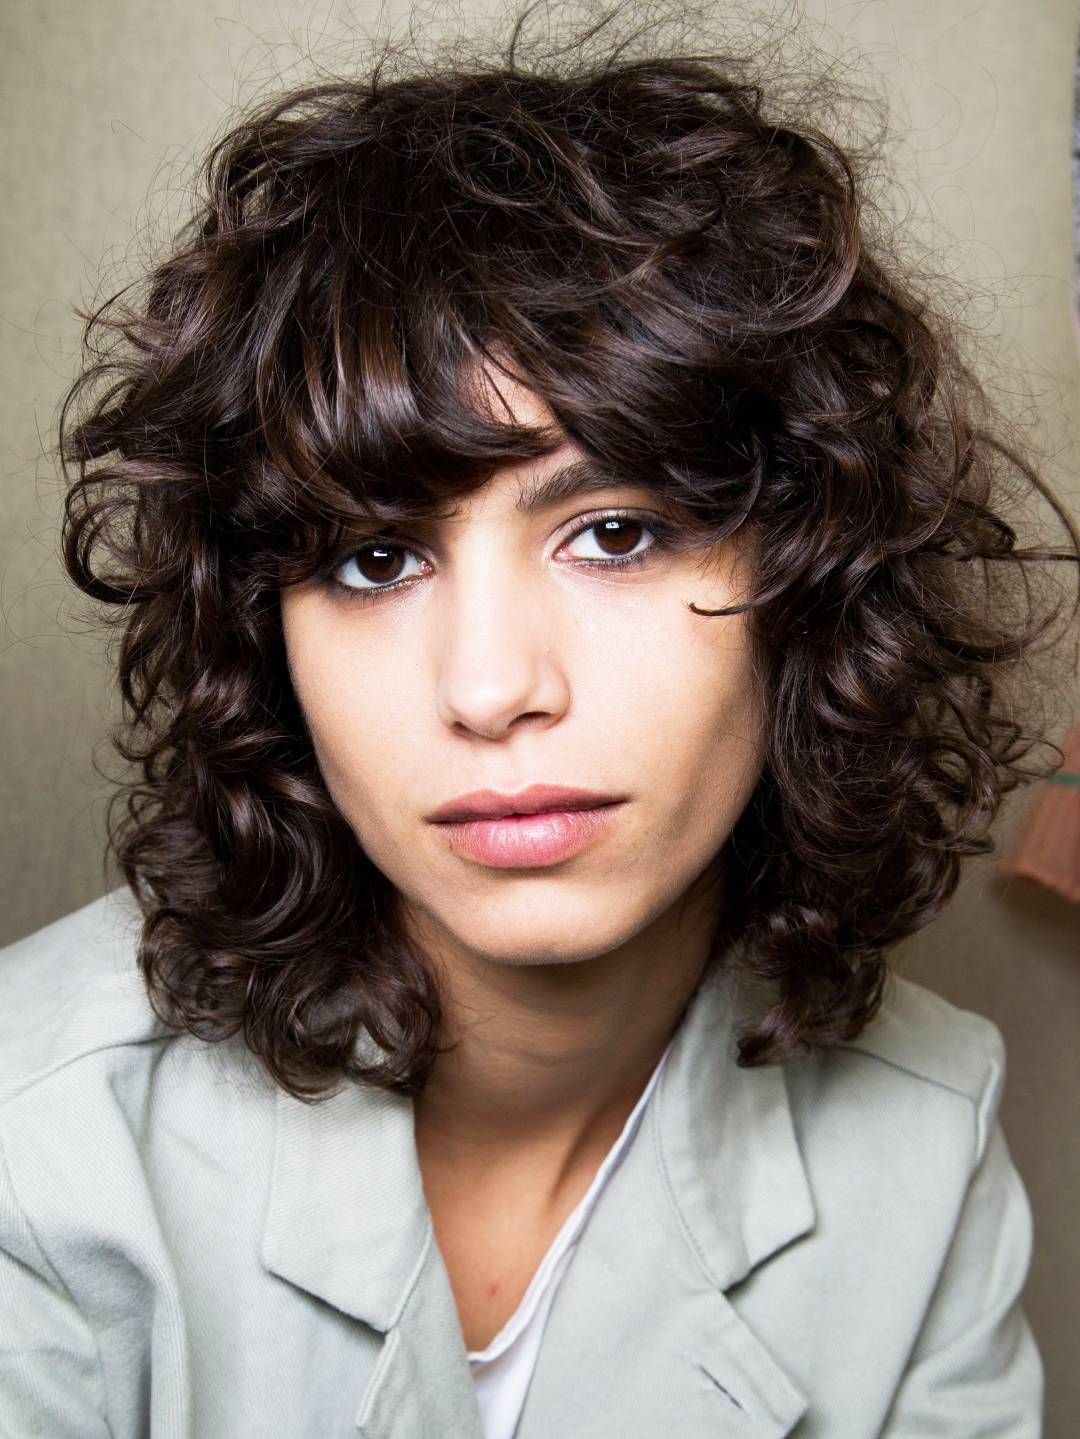 The Most Flattering Short Haircuts for Thick Hair (With images) | Thick hair styles, Short ...